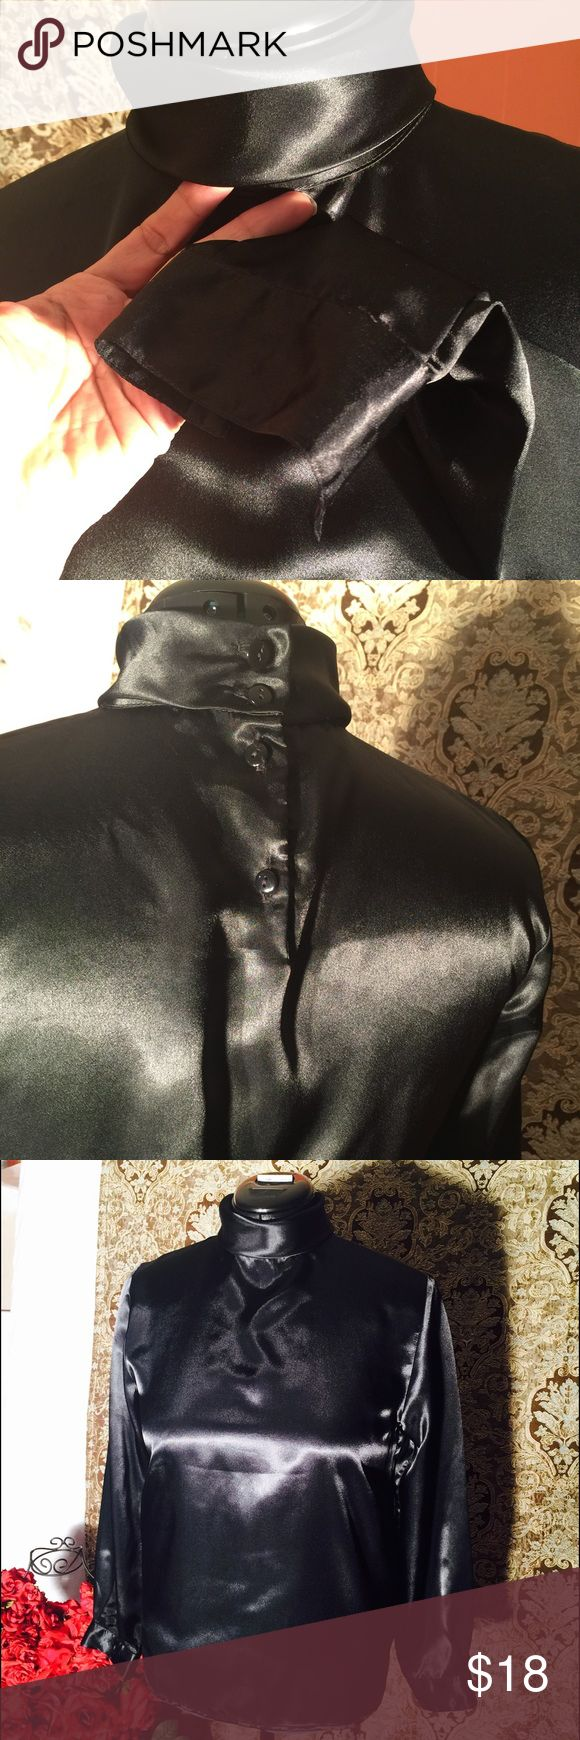 Rebecca Malone top Rebecca Malone satin silk blouse size medium/large high neck button in the back long cuffed sleeves. very beautiful silky soft black will look perfect with pencil skirt or mini even jeans or slacks very versatil (Shop and feel good about it 😁. Part of the money u spend goes to Purple Heart Foundation 💜)e Rebecca Malone Tops Blouses